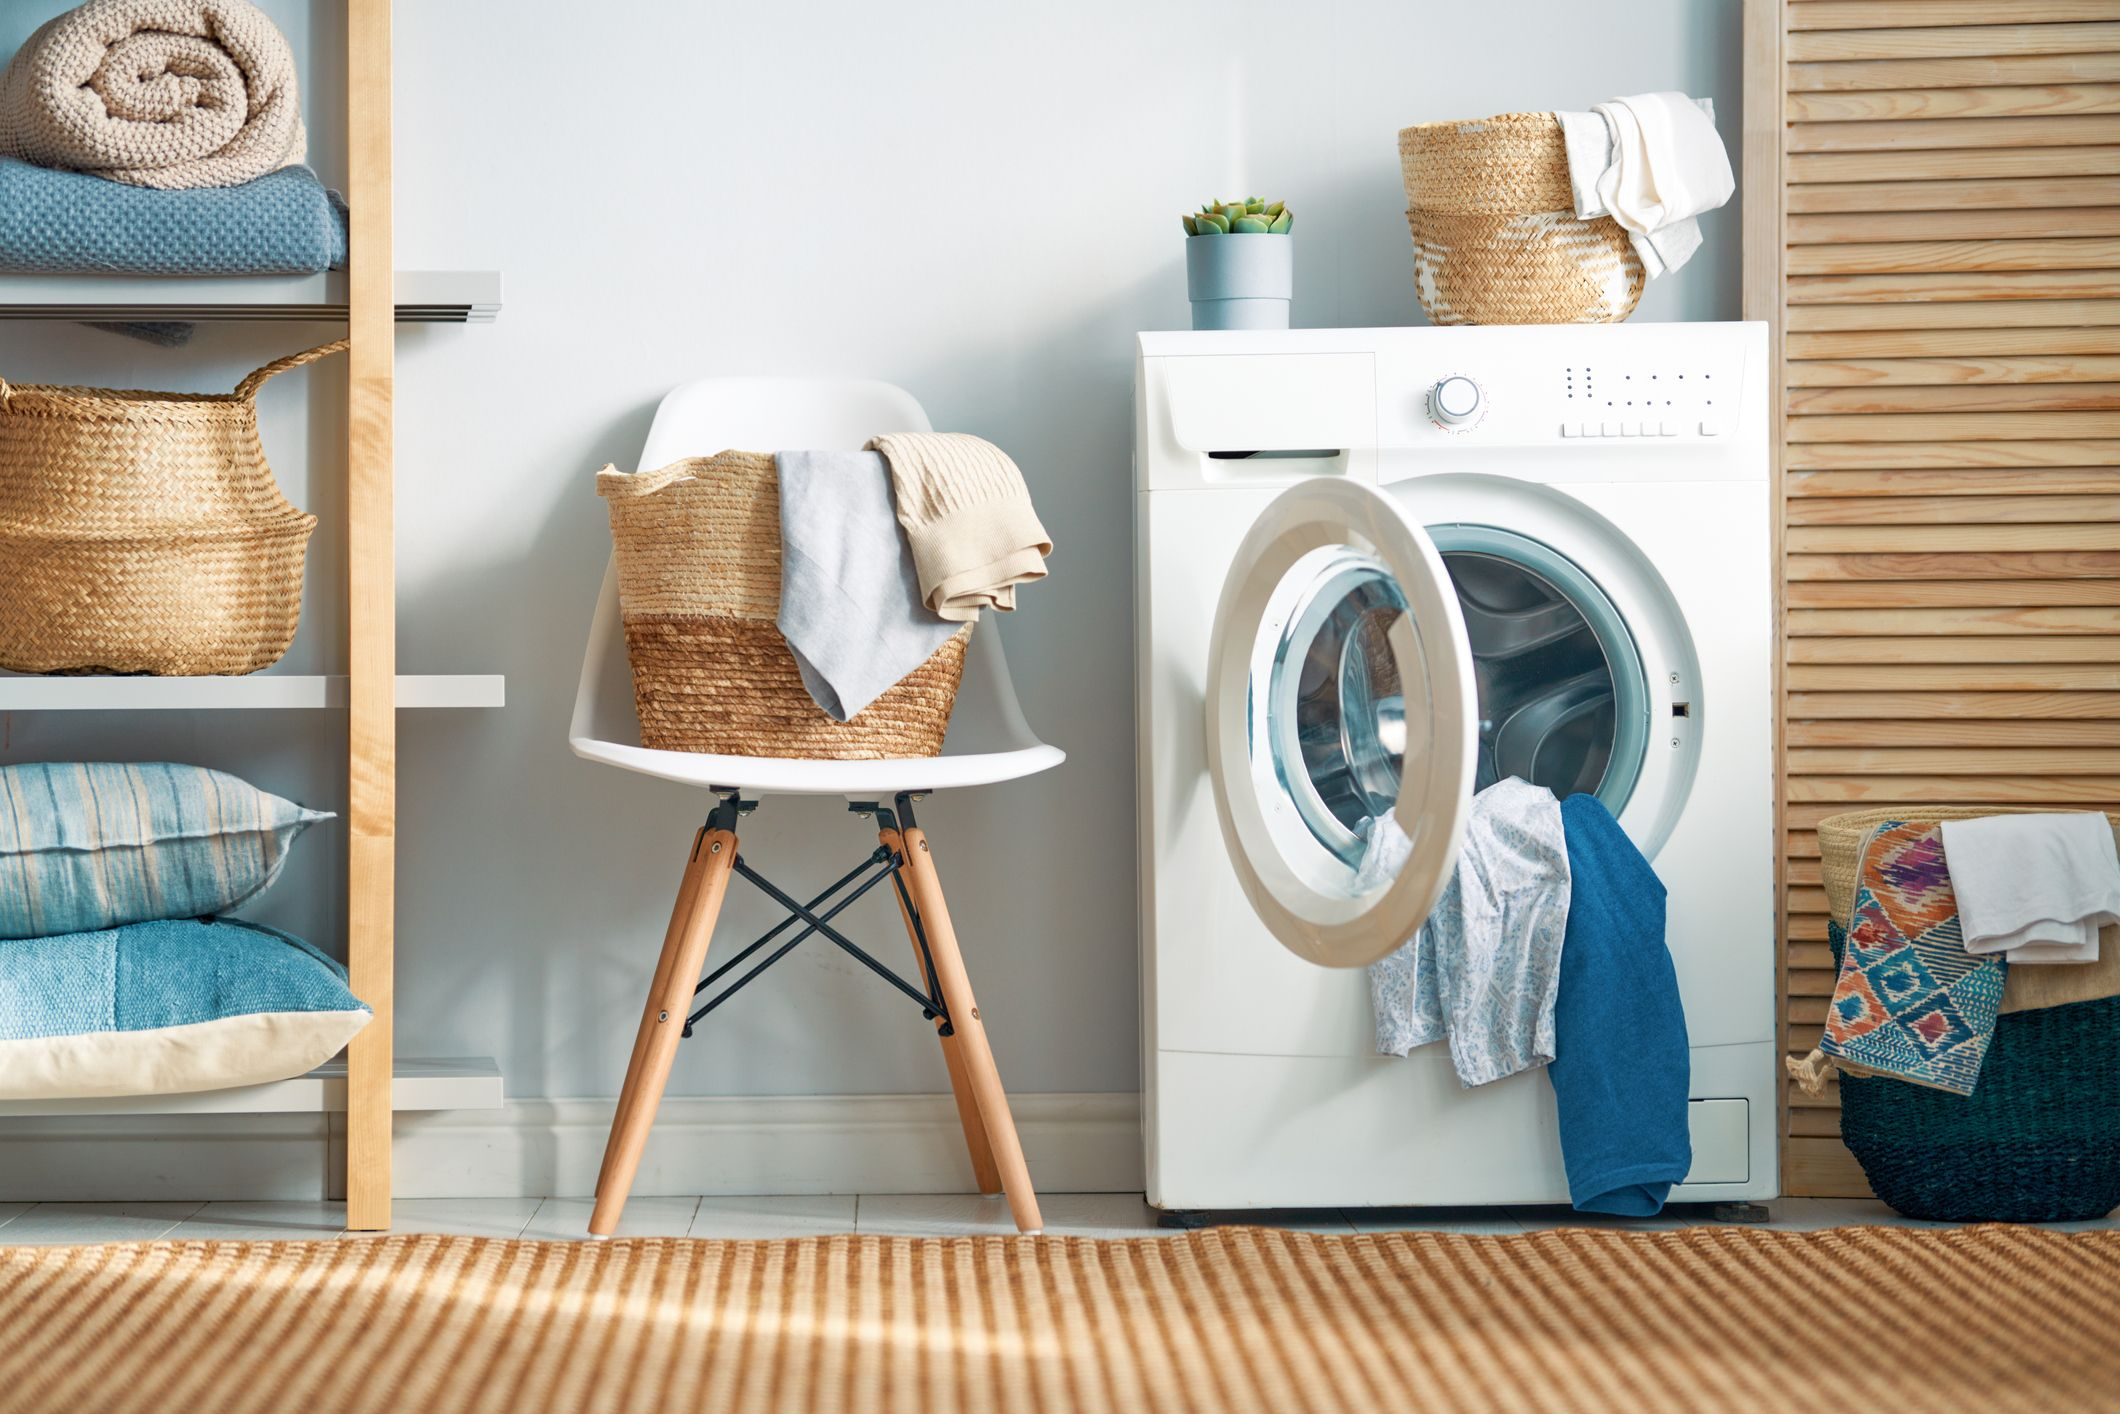 Why You Need To Clean Your Washing Machine Way More Frequently—And How To Do It Right